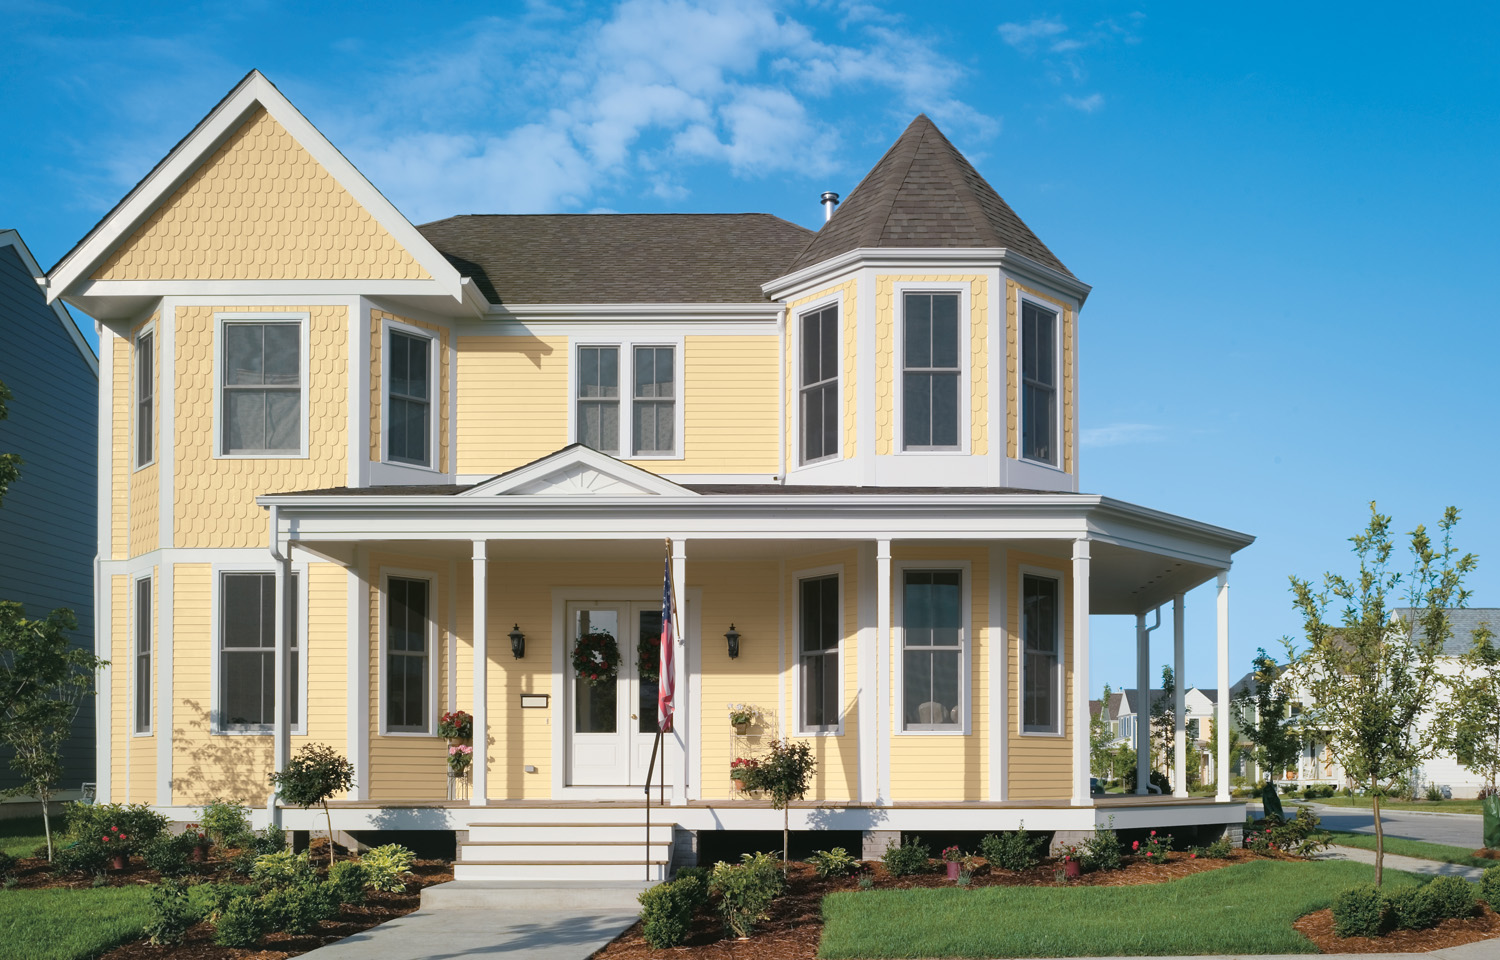 Fiber cement siding siding with your hands cement shingle for Allura siding vs hardie siding